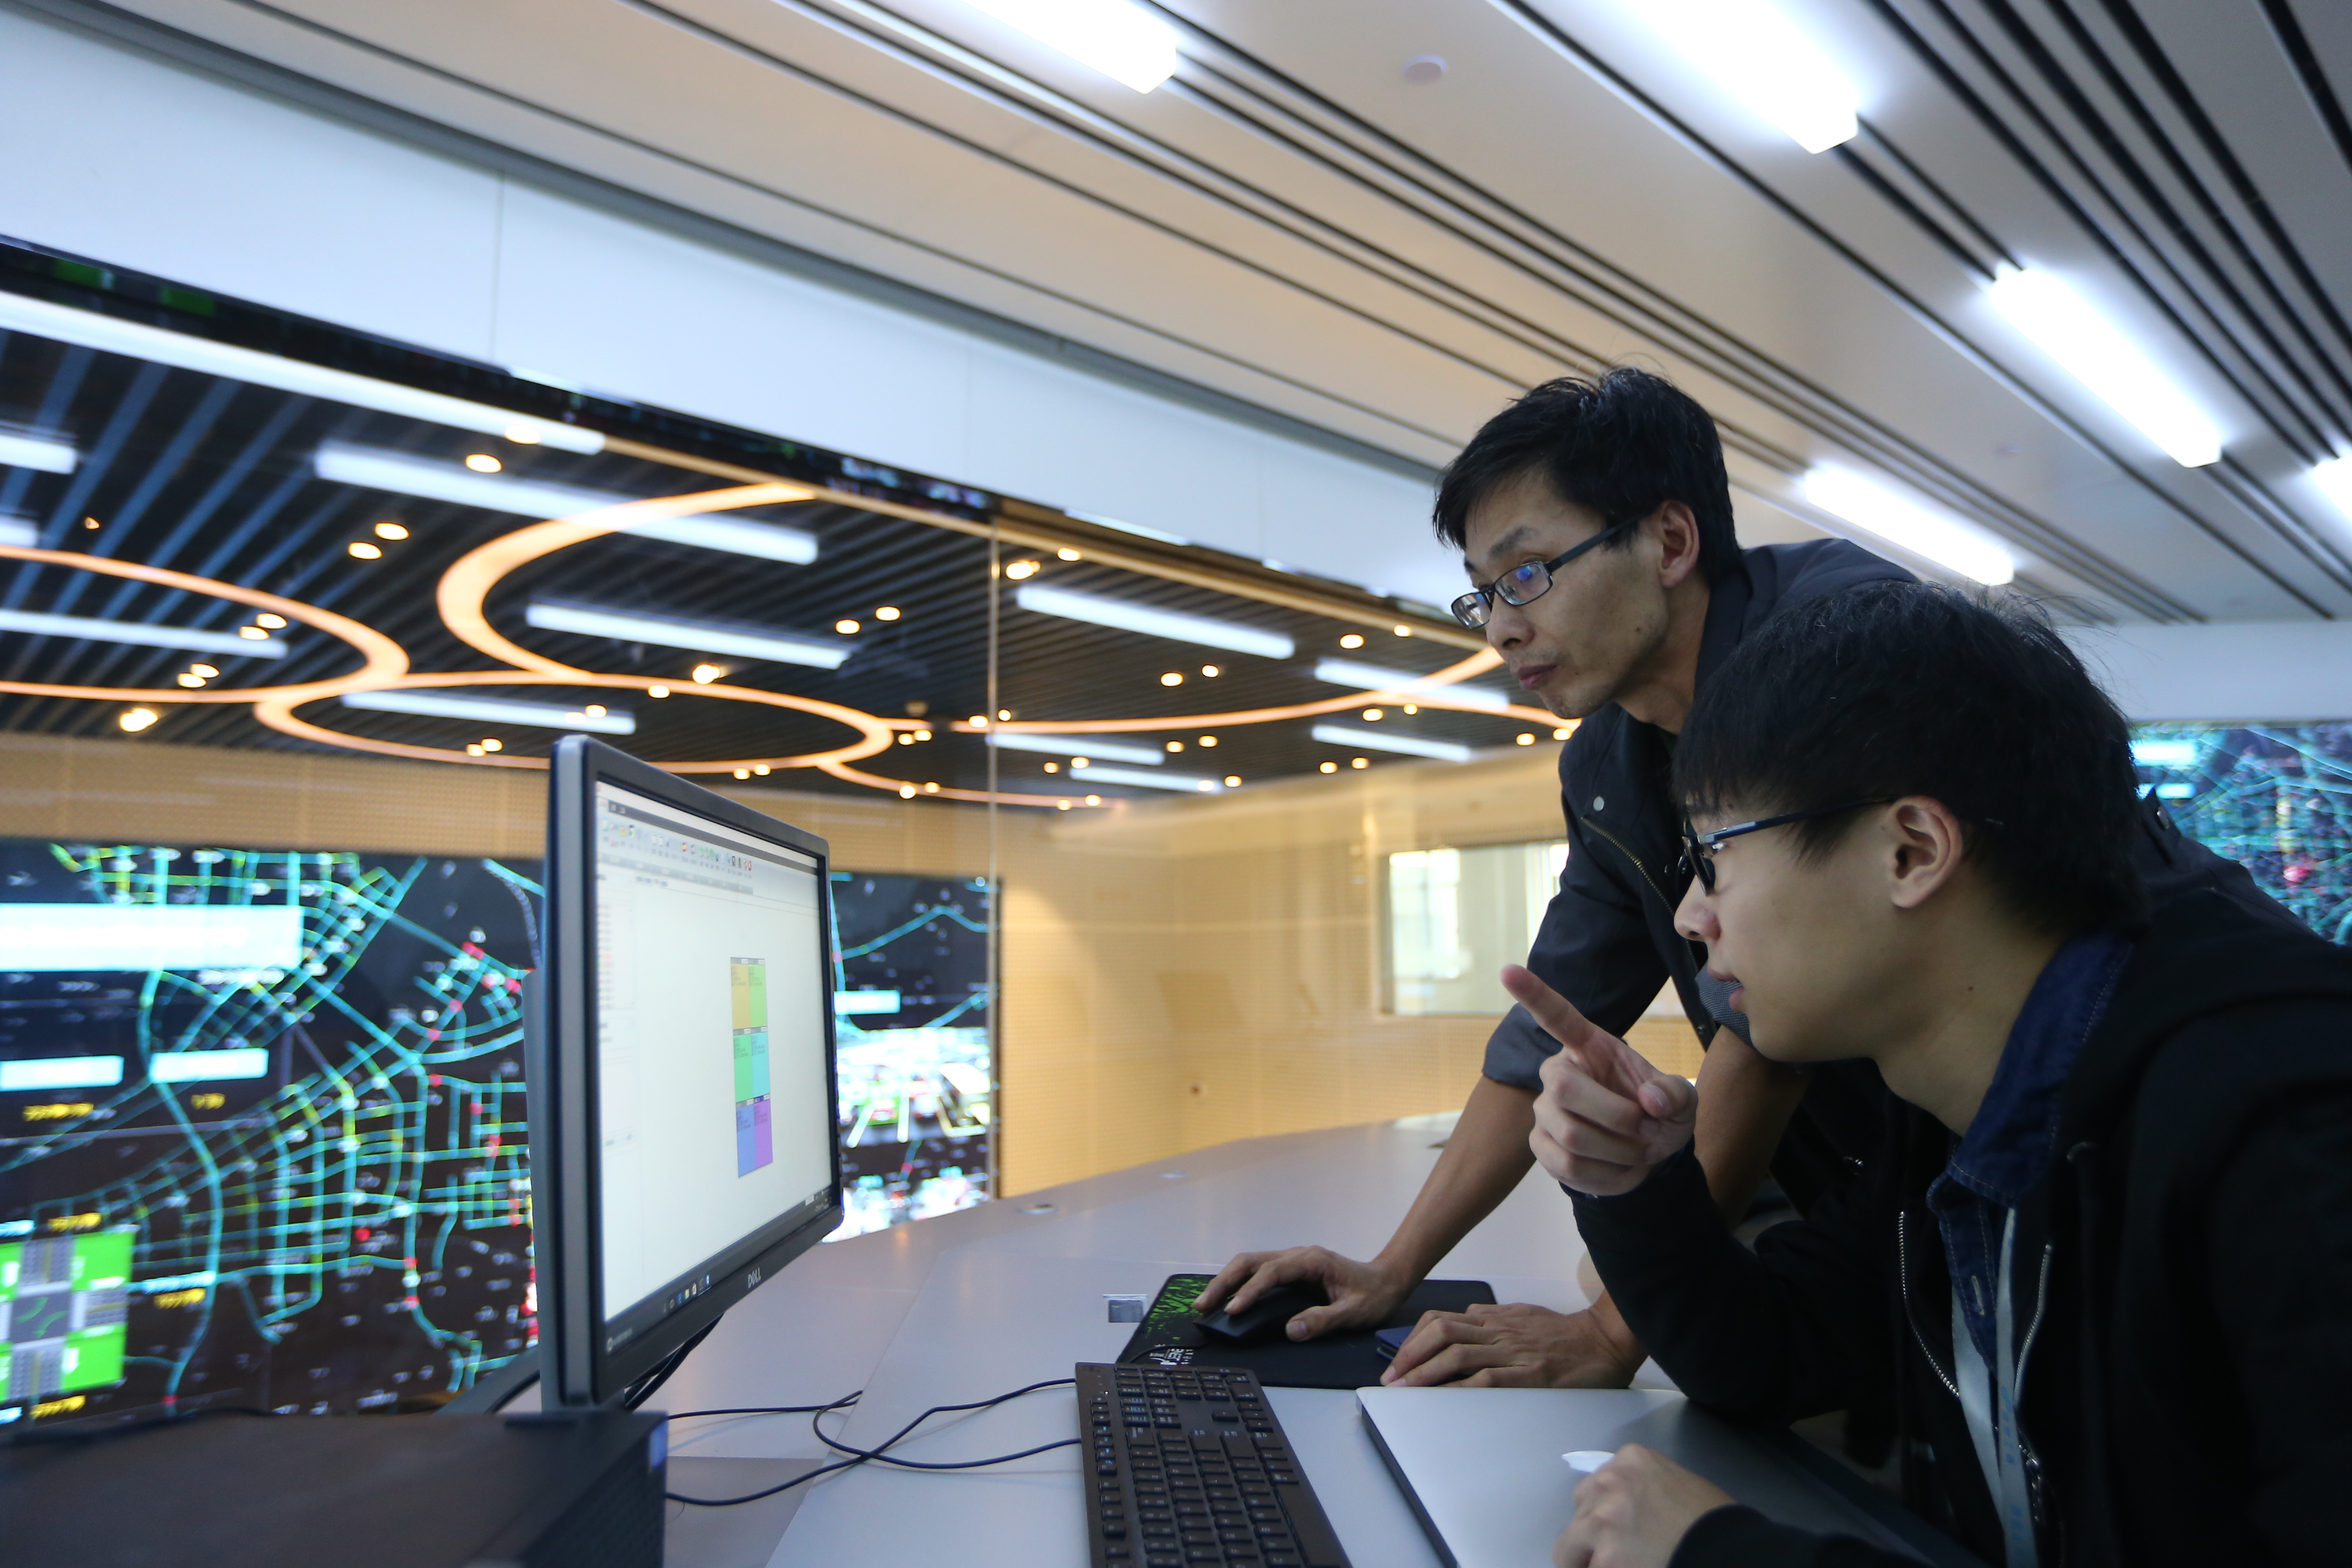 Alibaba's staff working at the Hangzhou City Brain control center